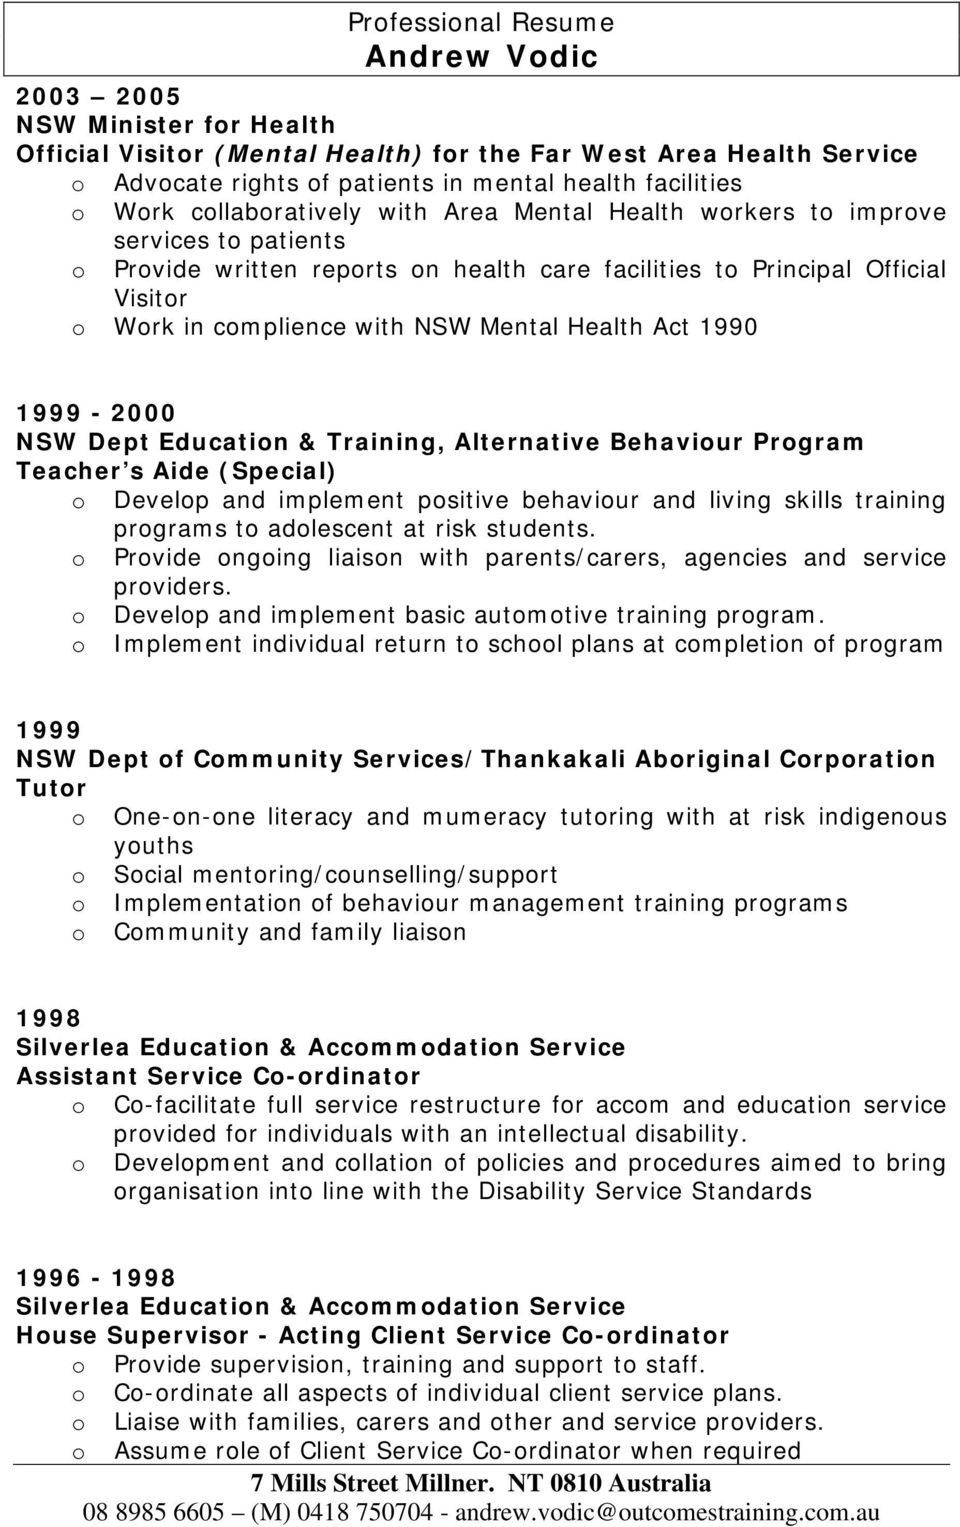 1999-2000 NSW Dept Educatin & Training, Alternative Behaviur Prgram Teacher s Aide (Special) Develp and implement psitive behaviur and living skills training prgrams t adlescent at risk students.